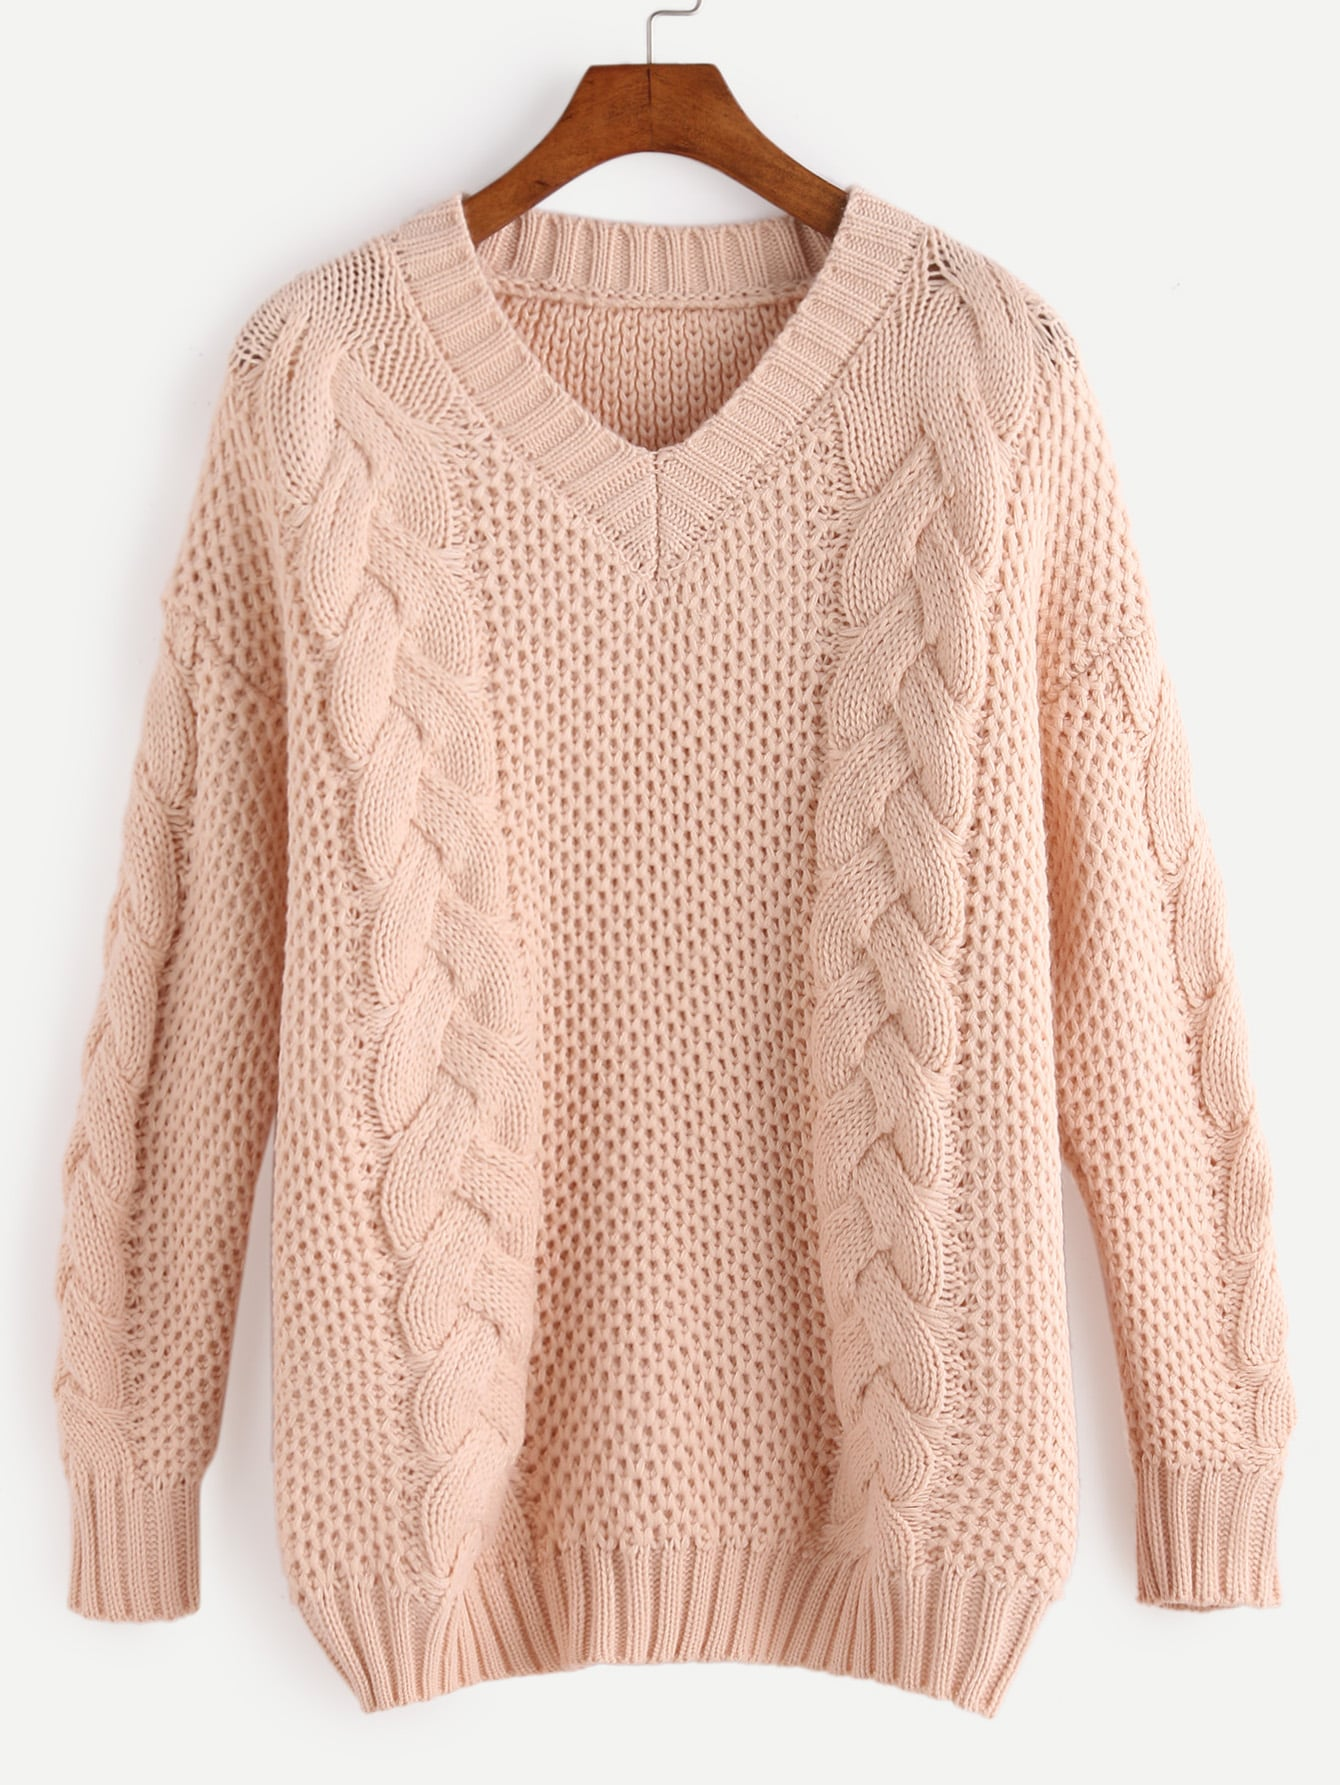 Apricot V Neck Cable Knit Sweater sweater161019102